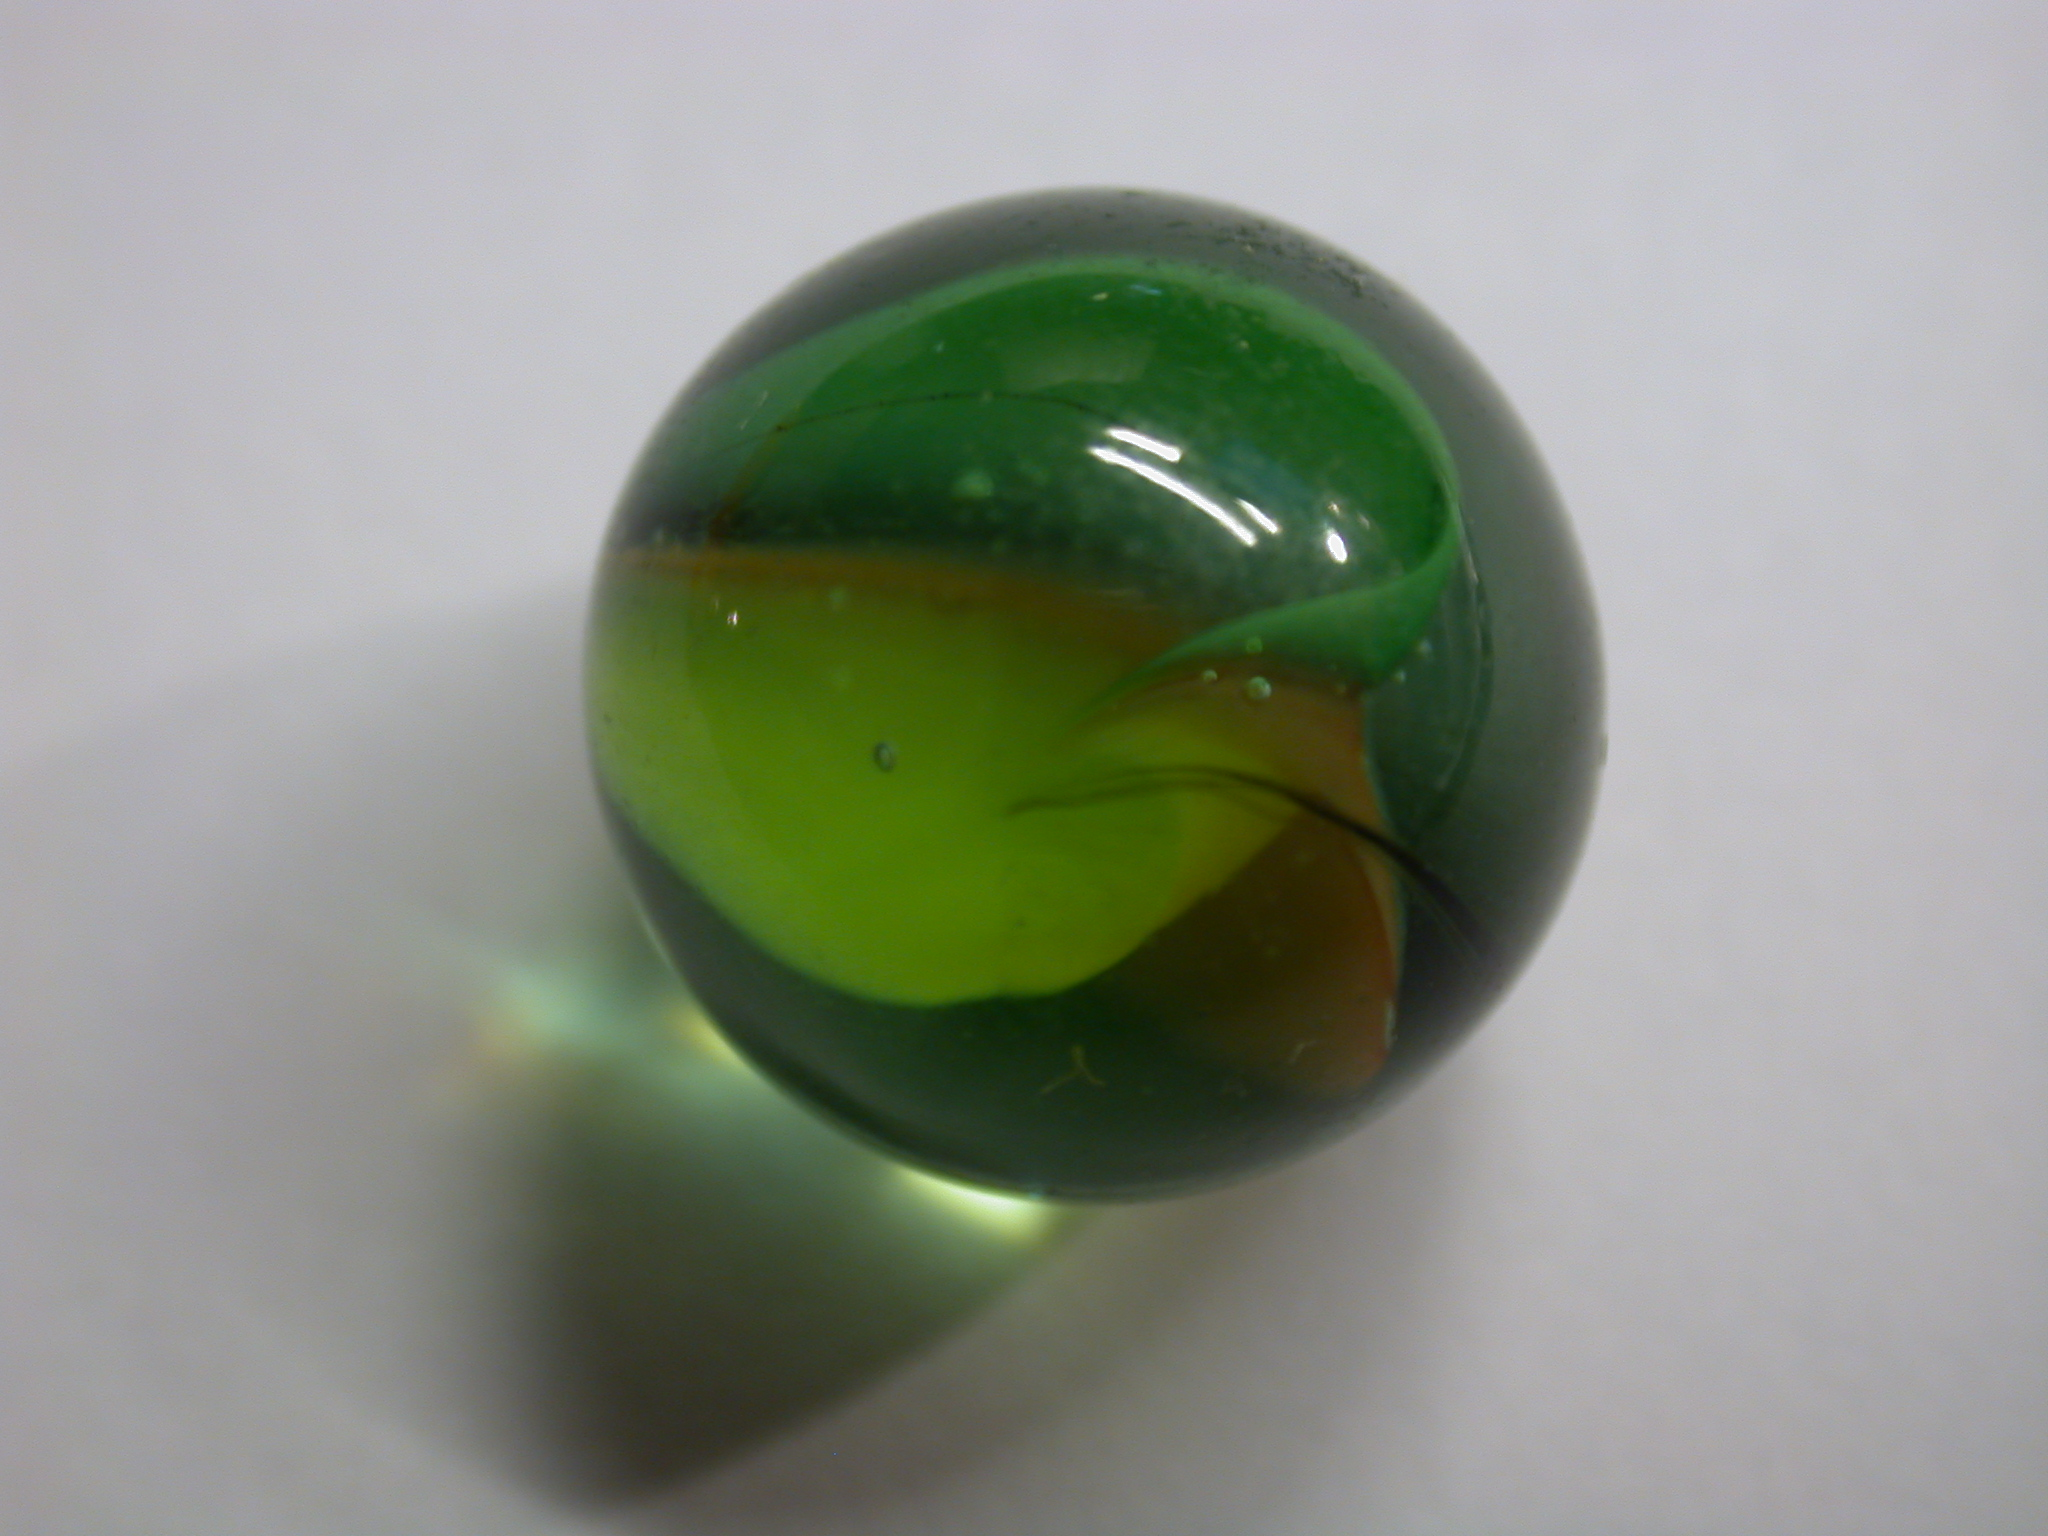 Green Marble Toy : Image after textures object marble sphere green toy glass